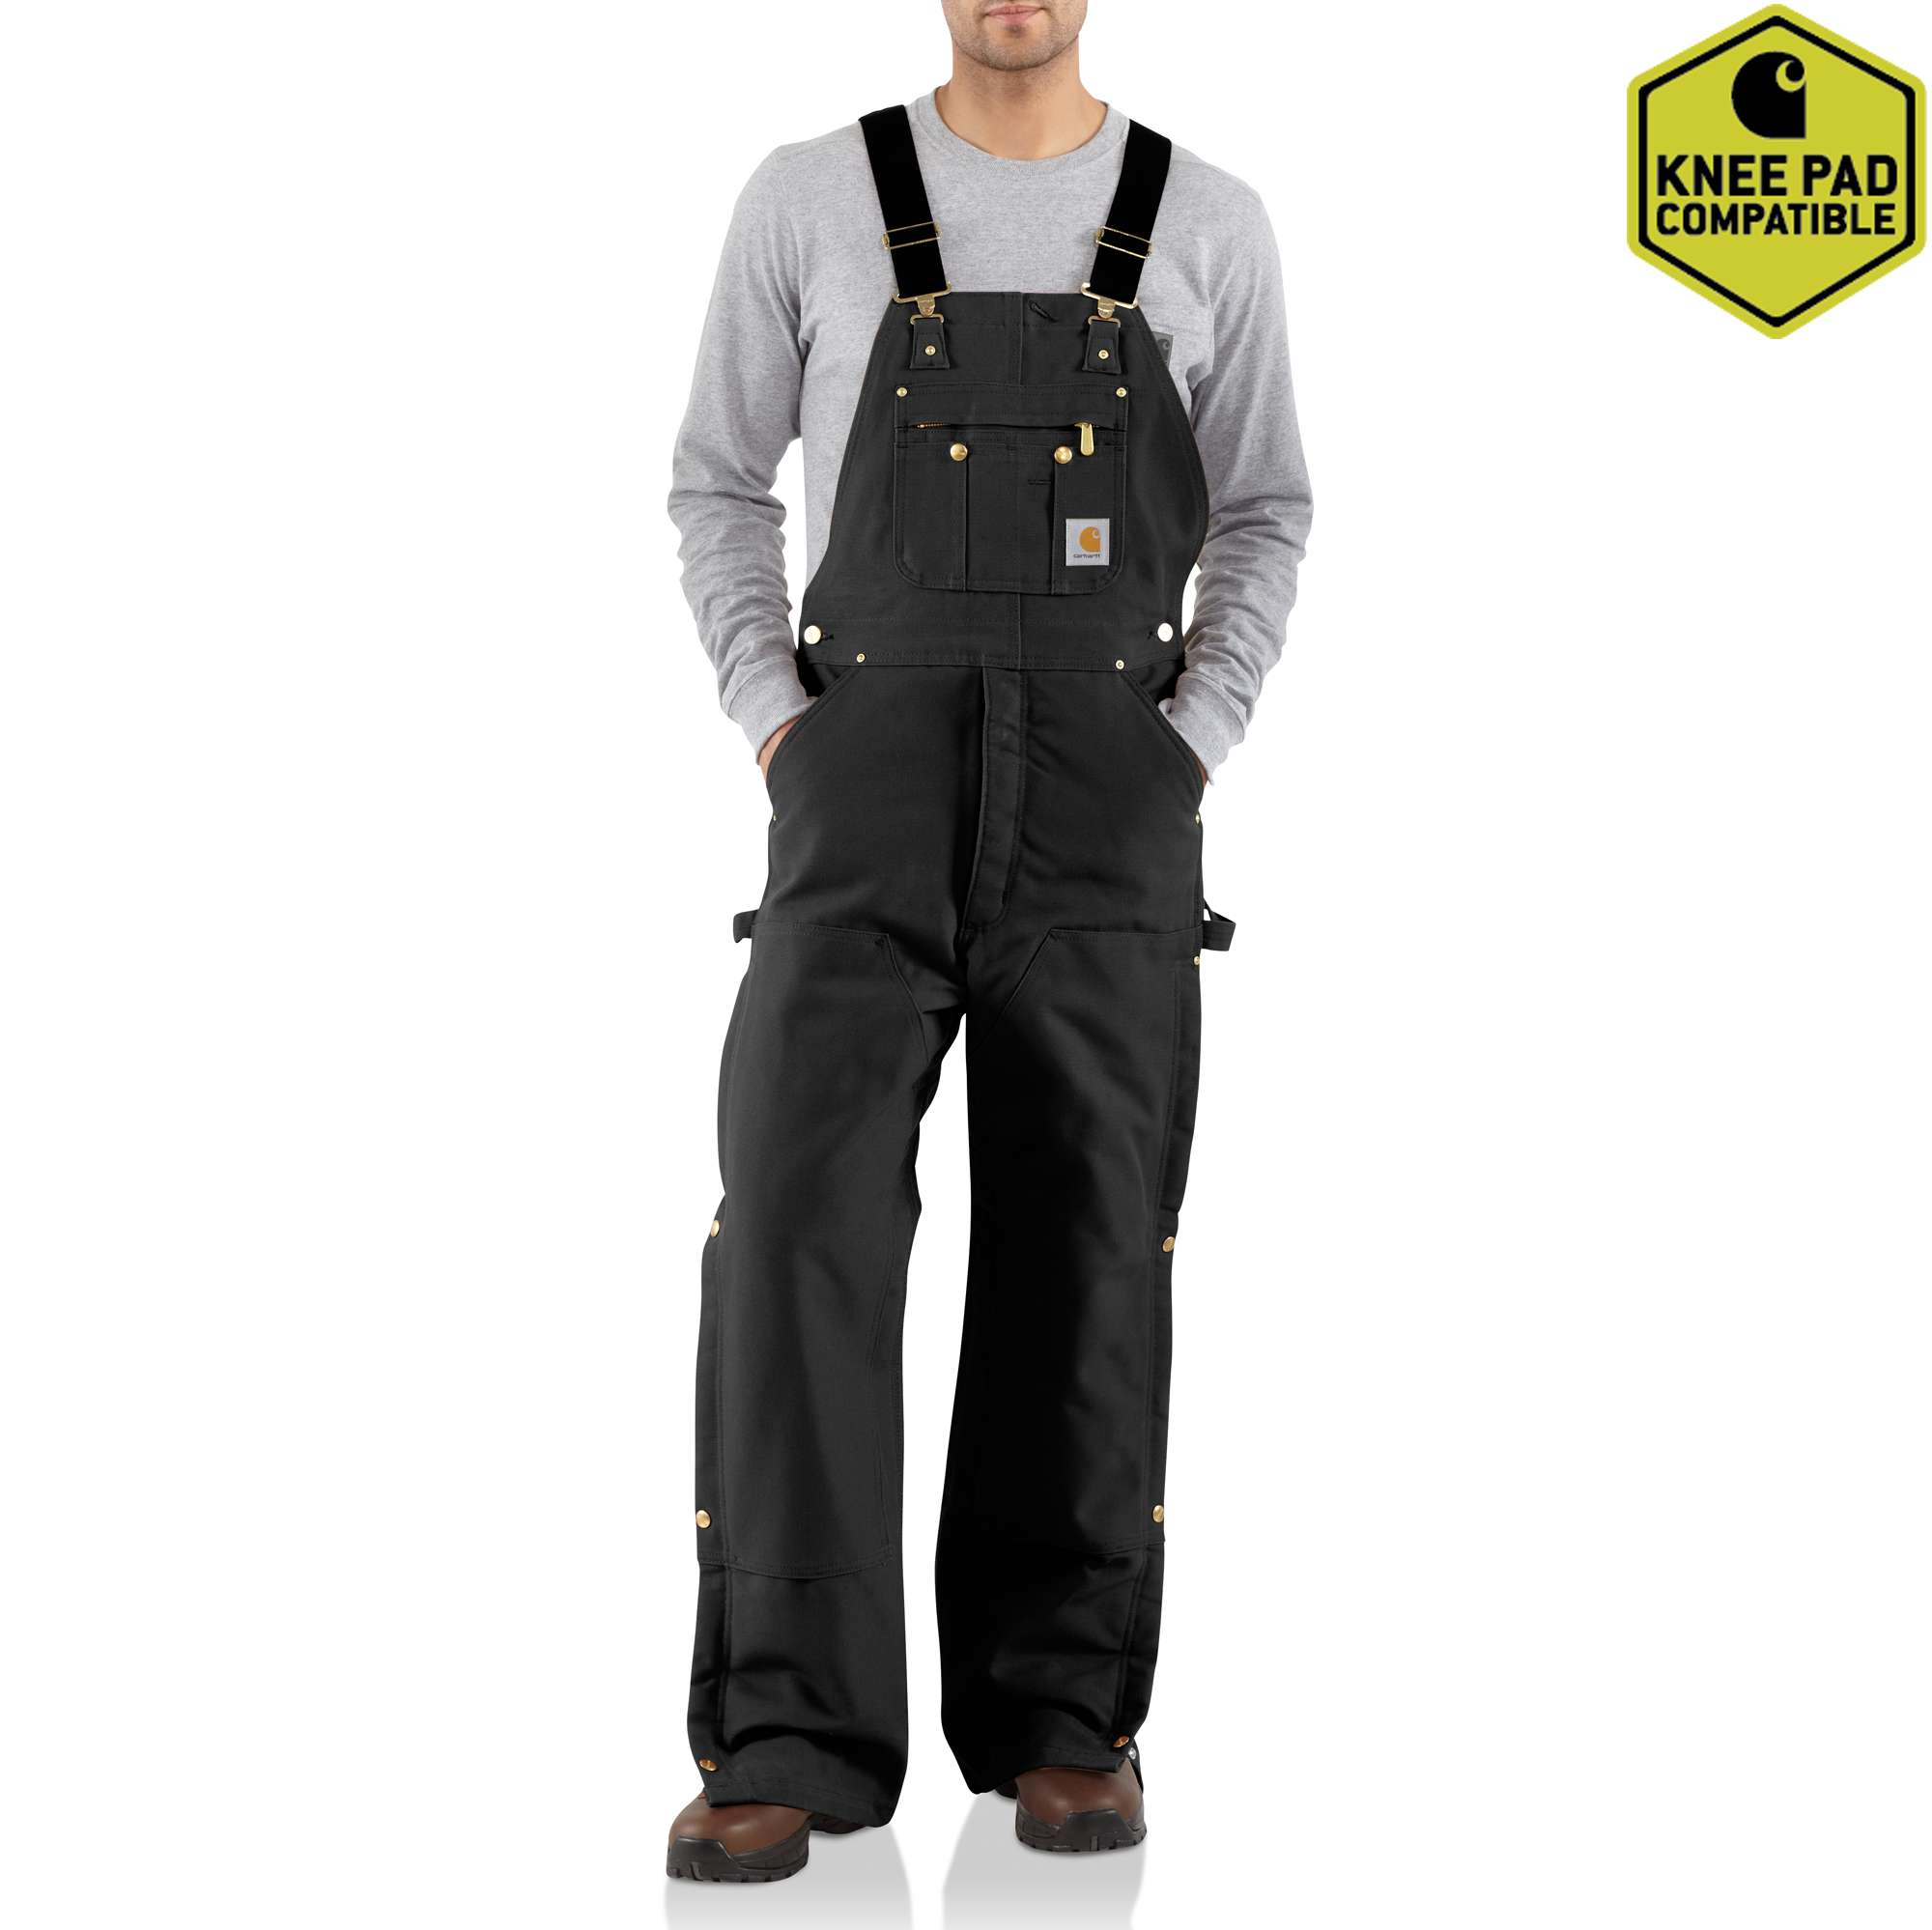 Men's Duck Zip-to-Thigh Bib Overall/Quilt Lined, Black, swatch